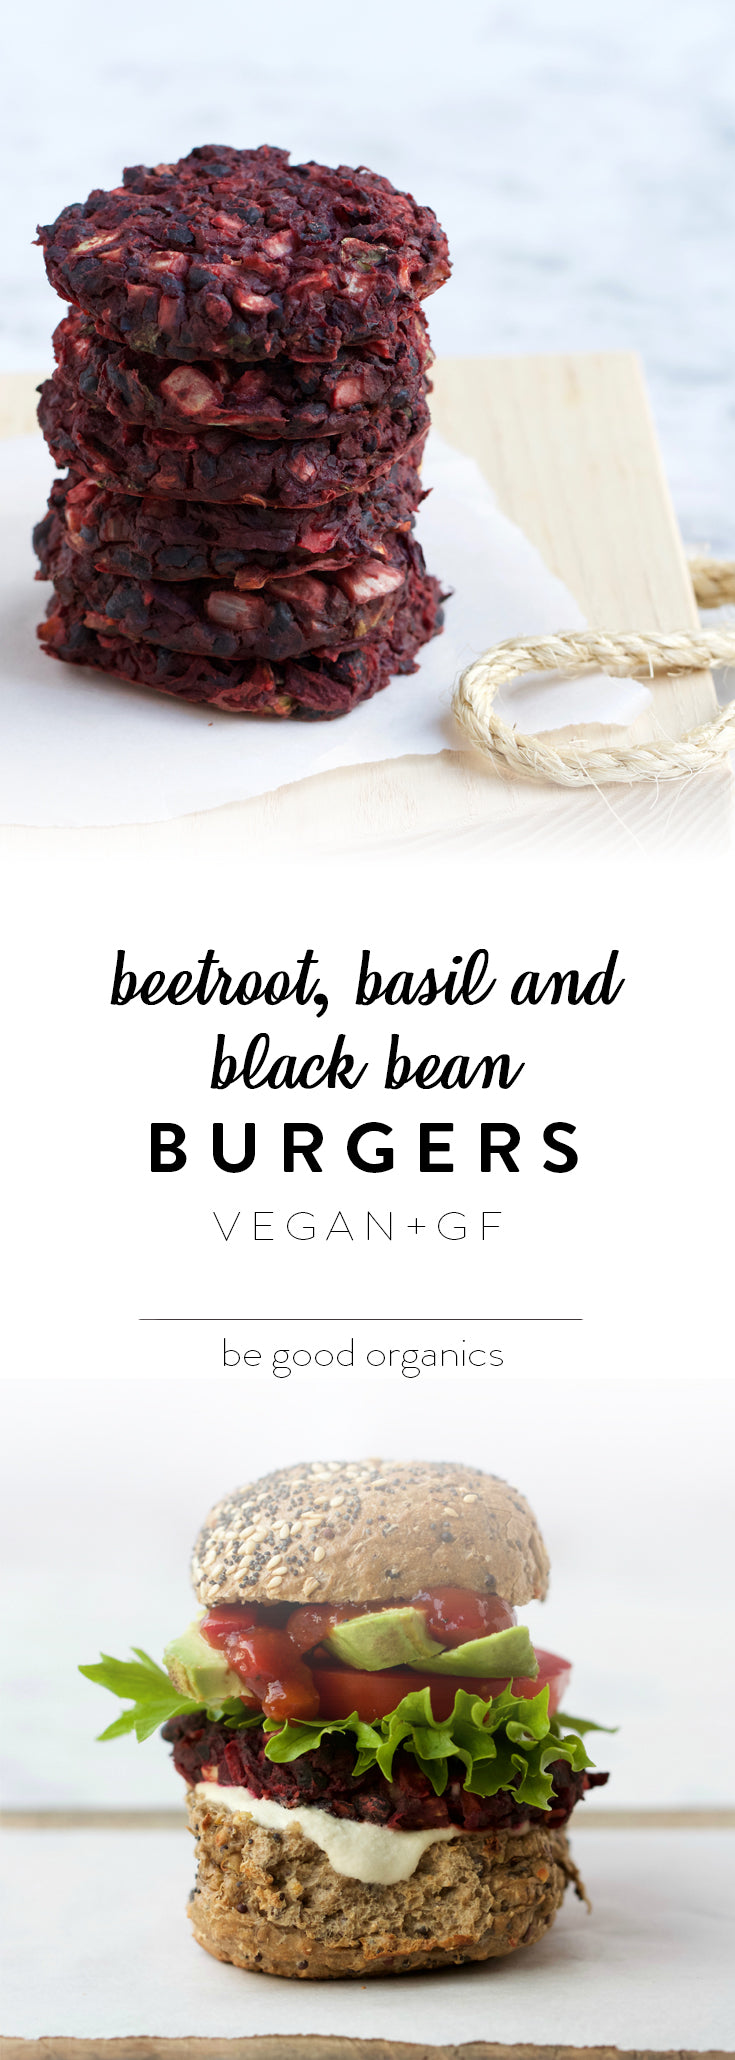 Beetroot, Basil and Black Bean Burgers - Be Good Organics.